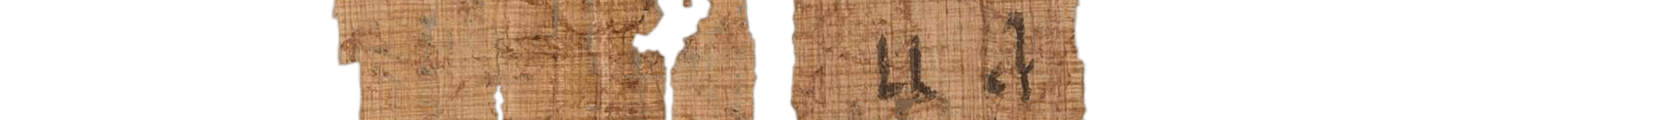 the Turin king list 4.16 (photo of the hieratic text)